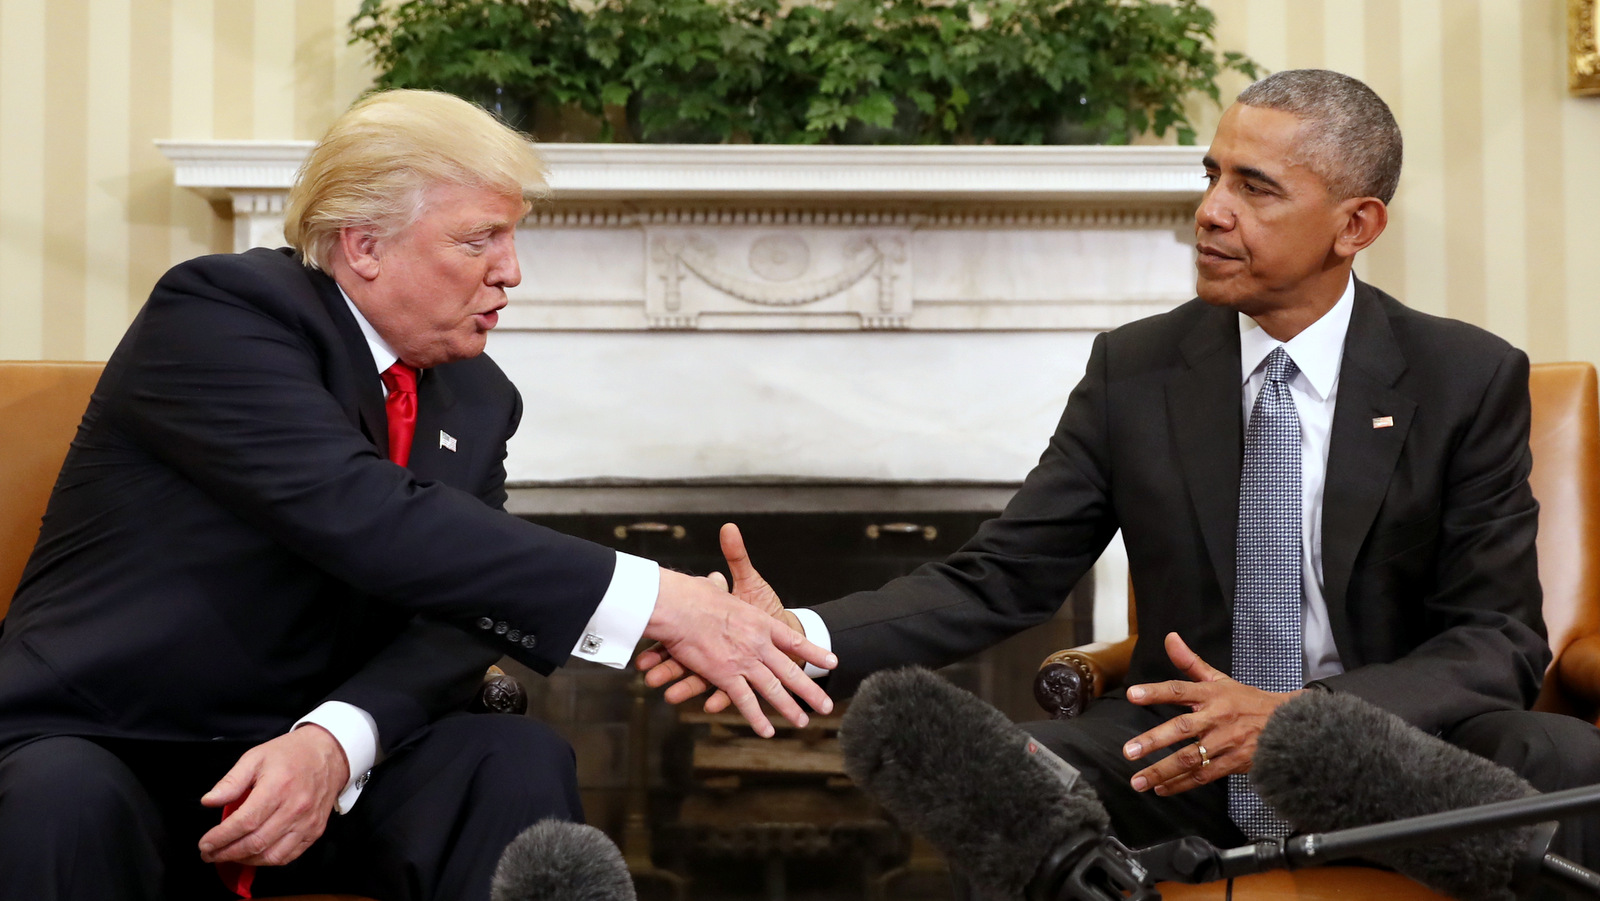 Picking Up Where Obama Left Off: Trump's Justice Department Seizes Reporters' Records